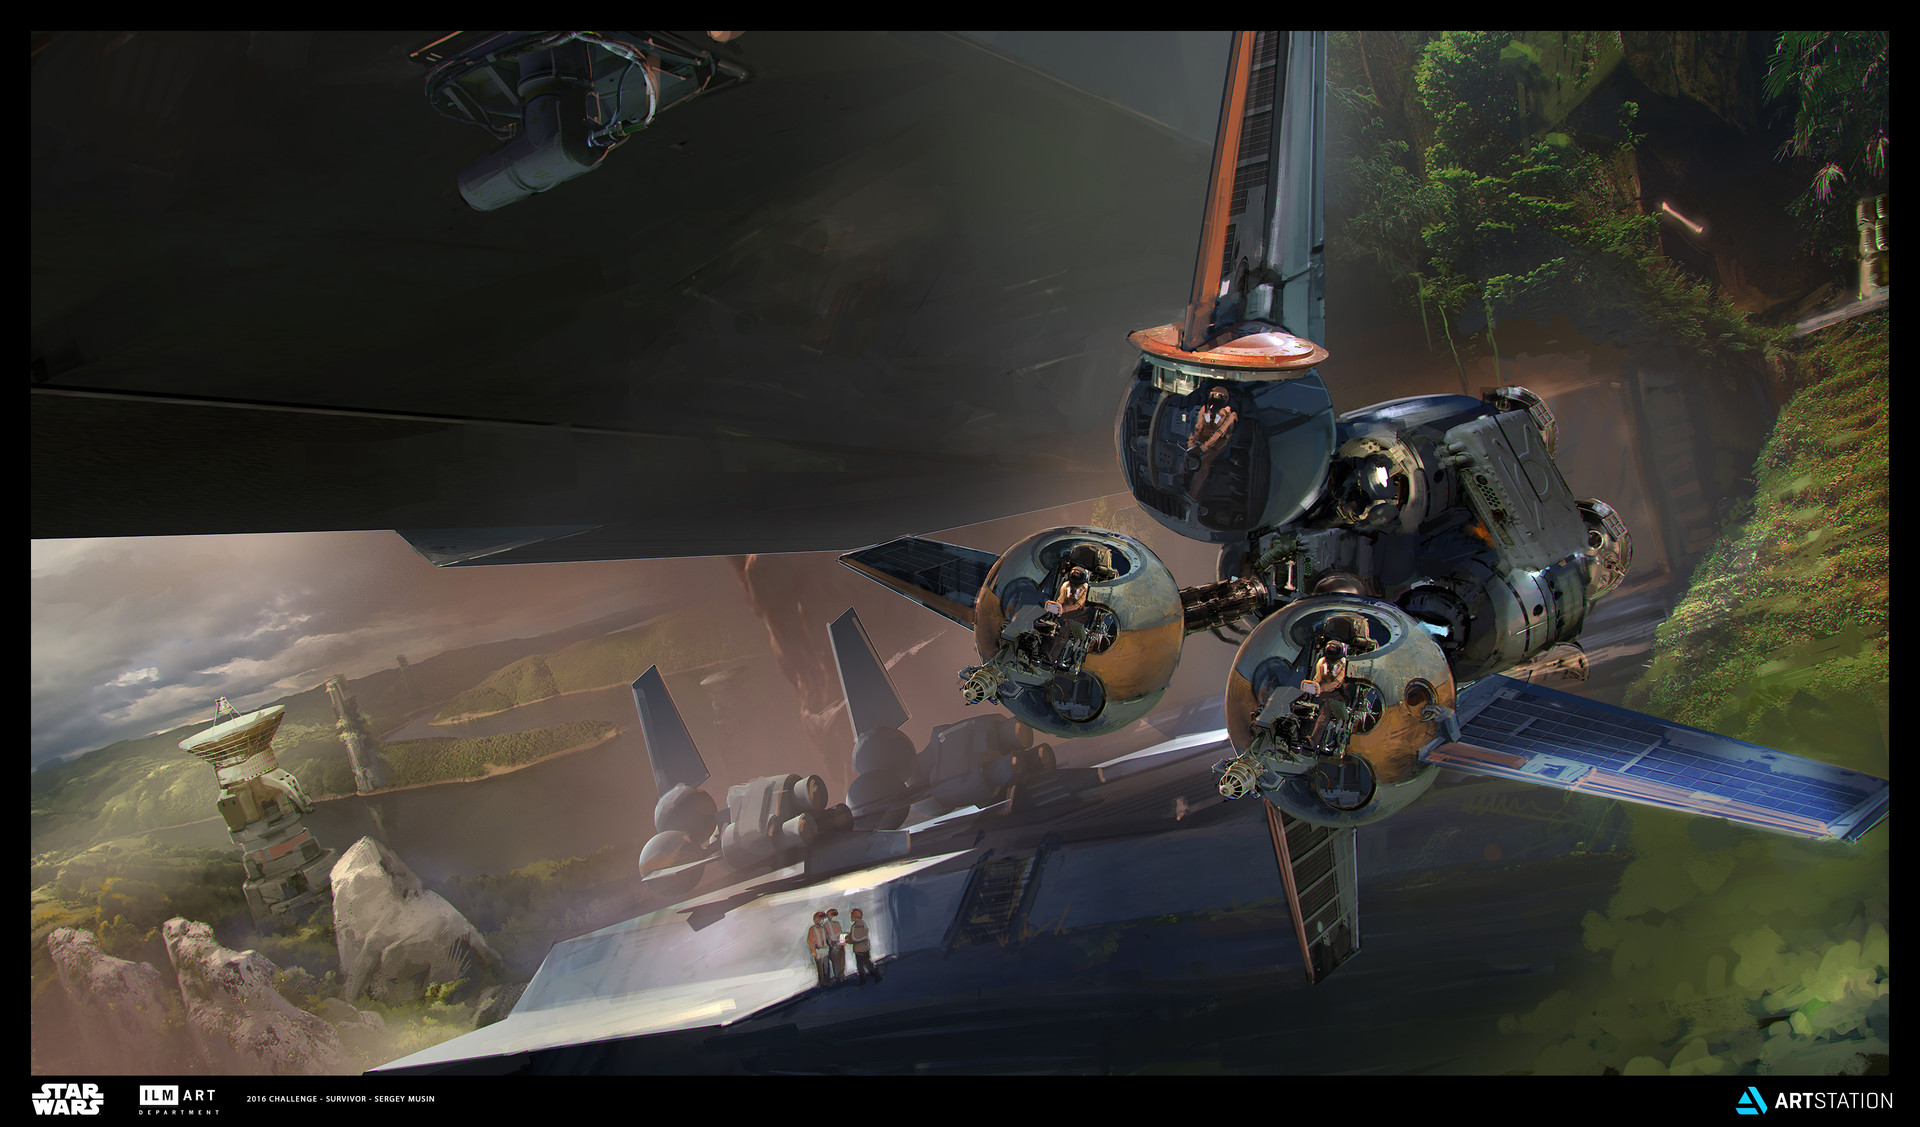 Sergey musin the moment rebel base fighters